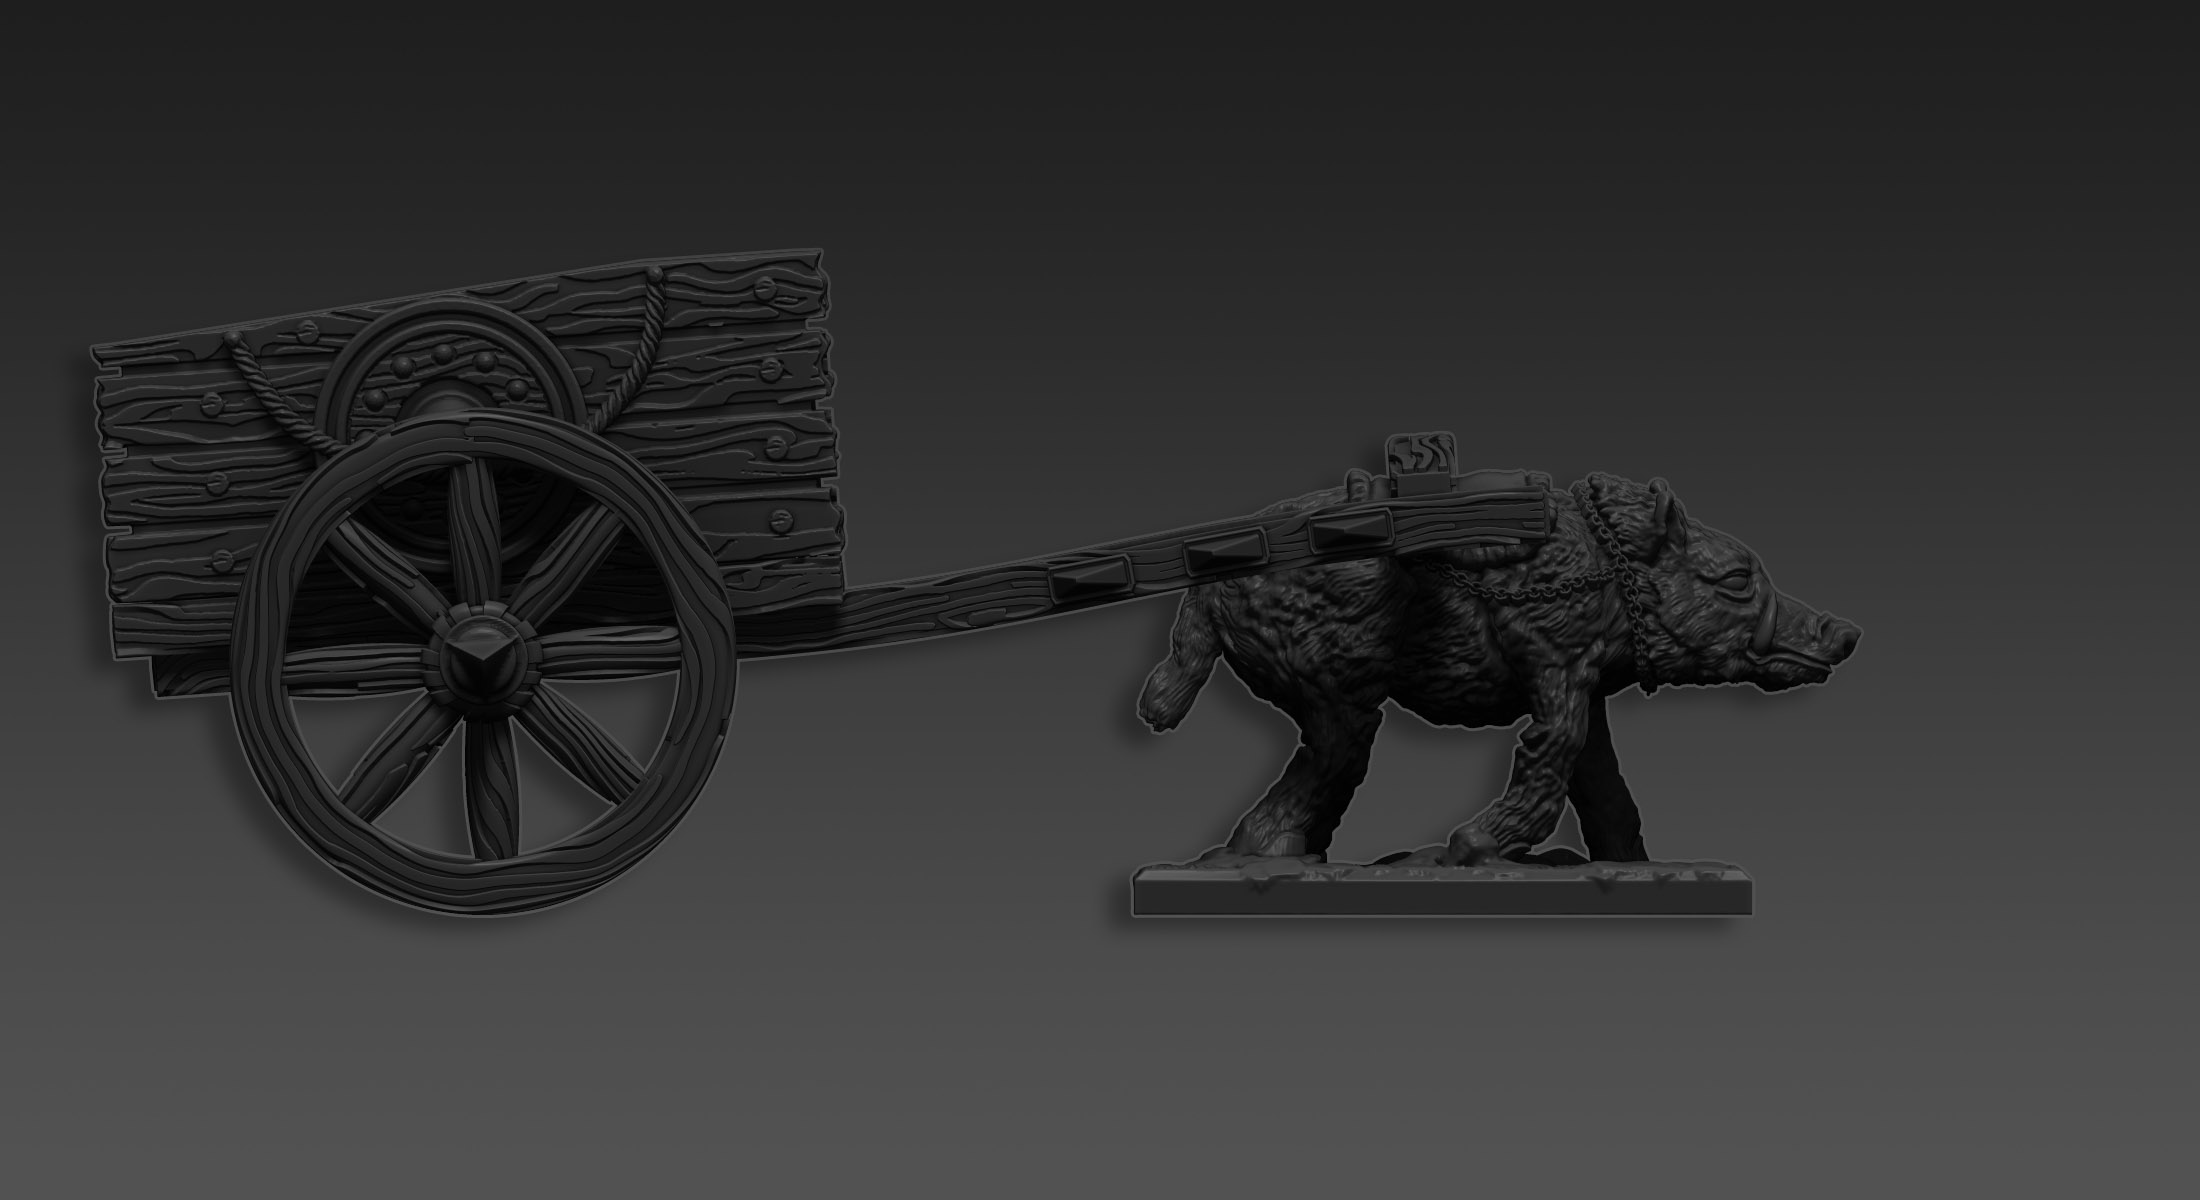 ZBrush 3D Printing Course - Goblin War Chariot